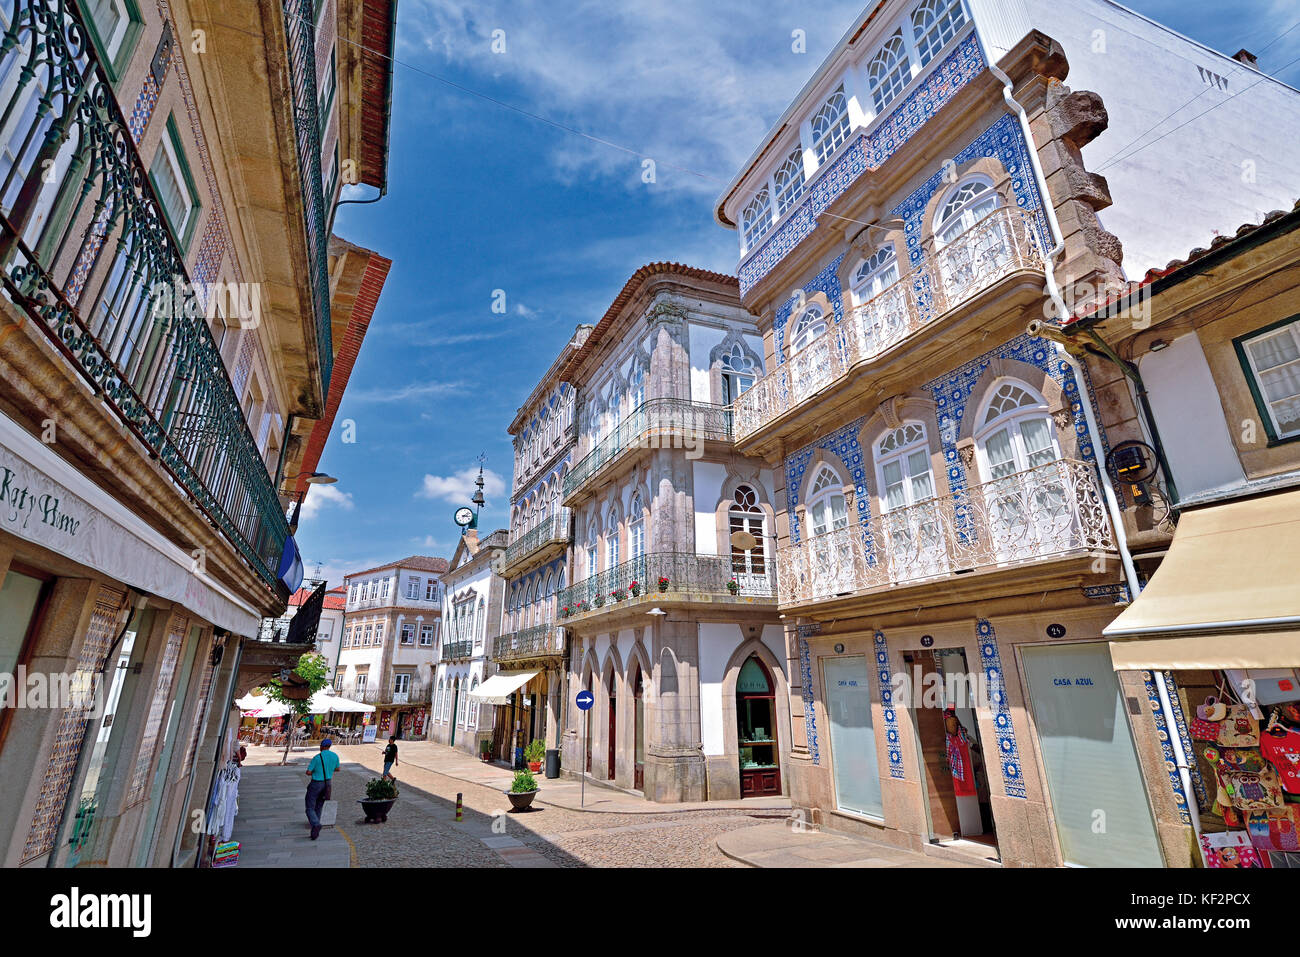 City road with historic buildings covered with blue and white tiles and iron balconies Stock Photo